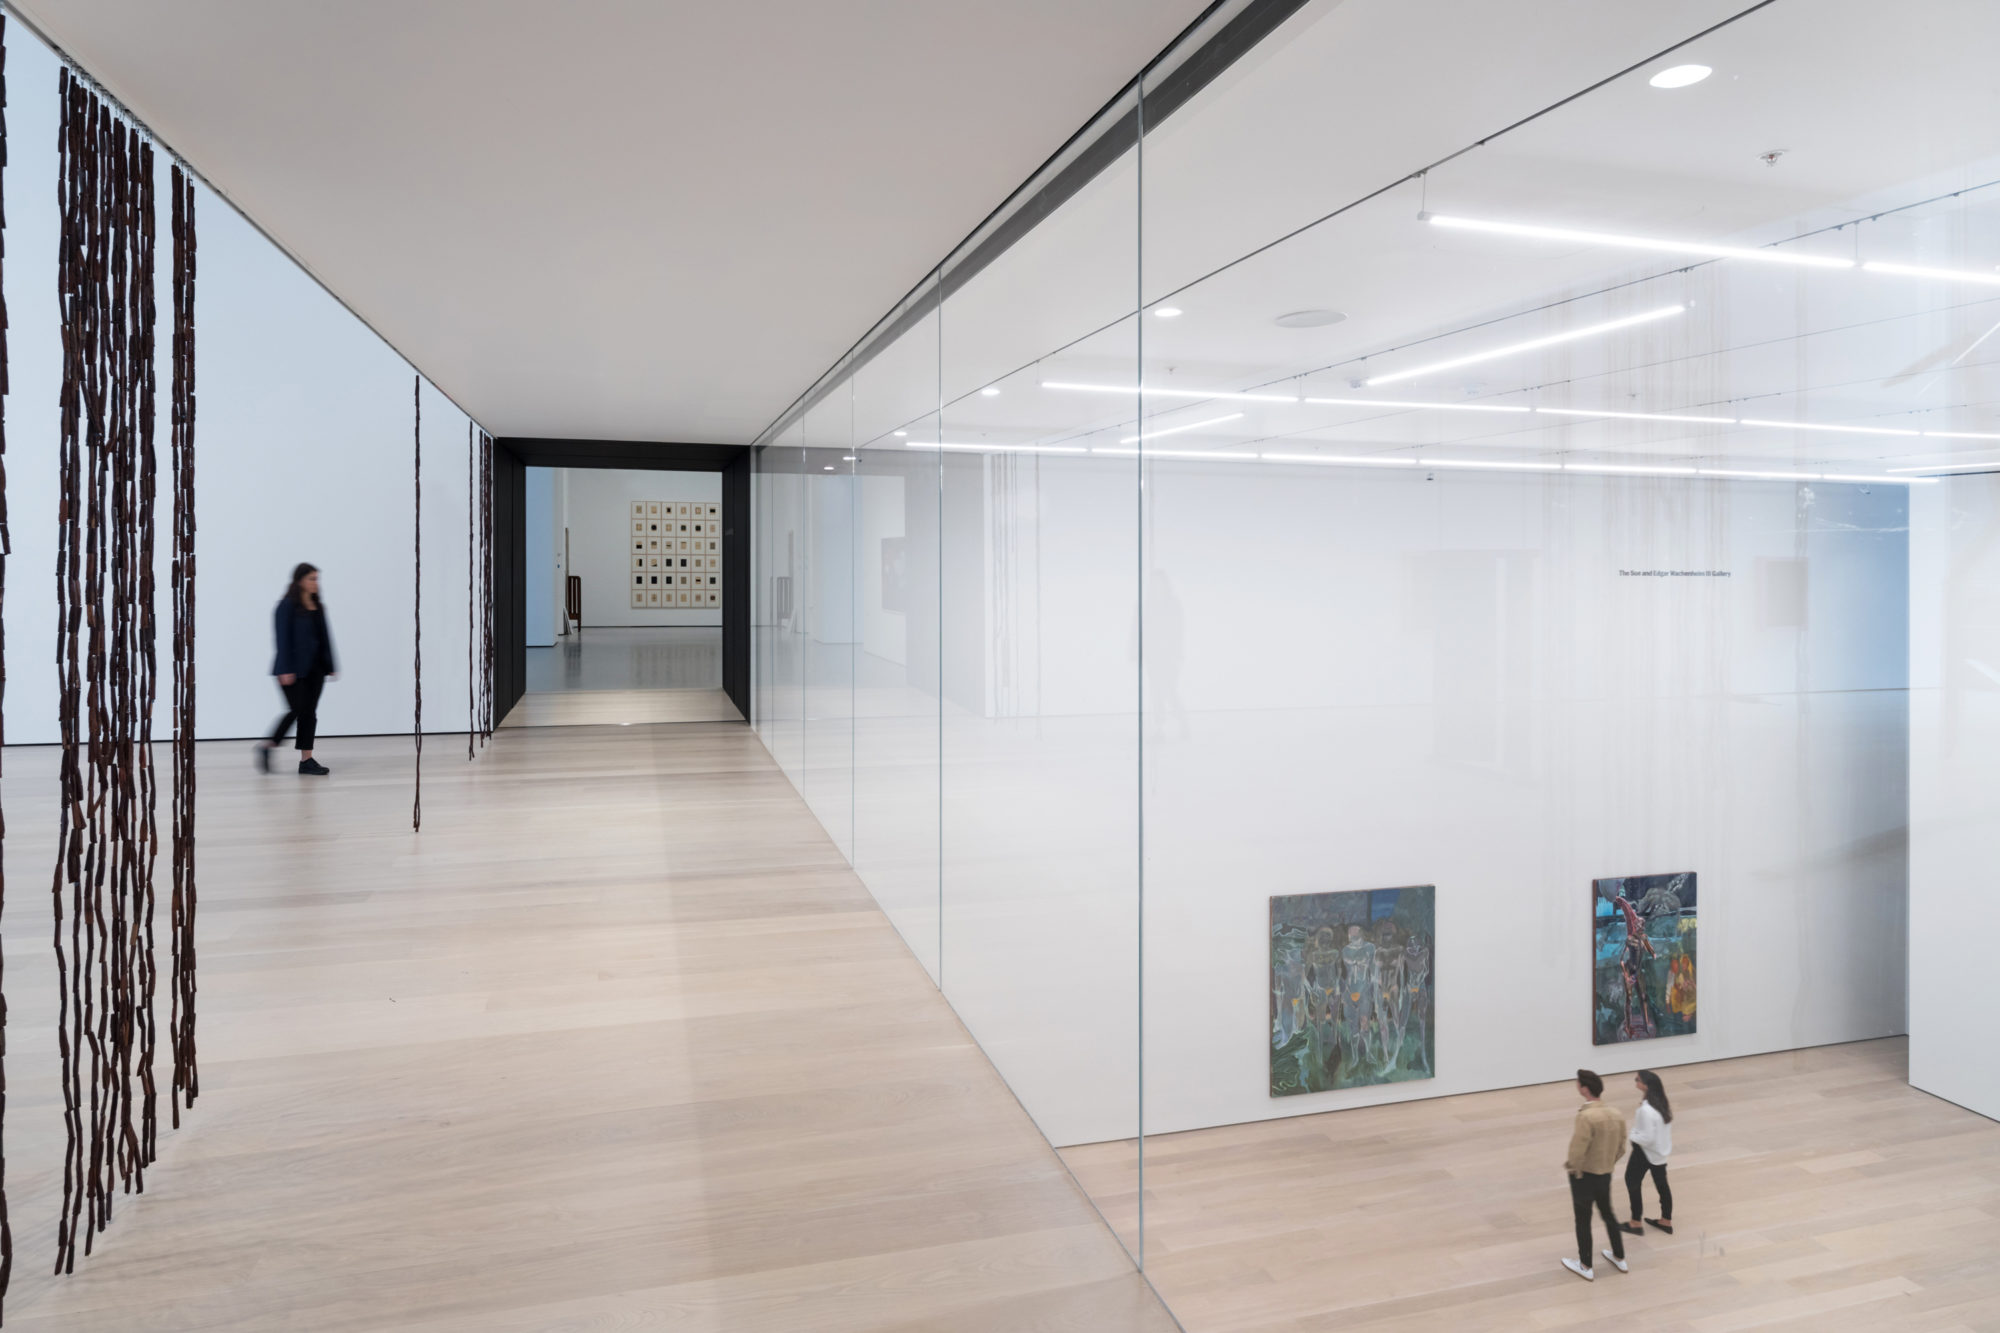 Diller Scofidio + Renfro's MoMA features glass walls that provide views into the galleries below